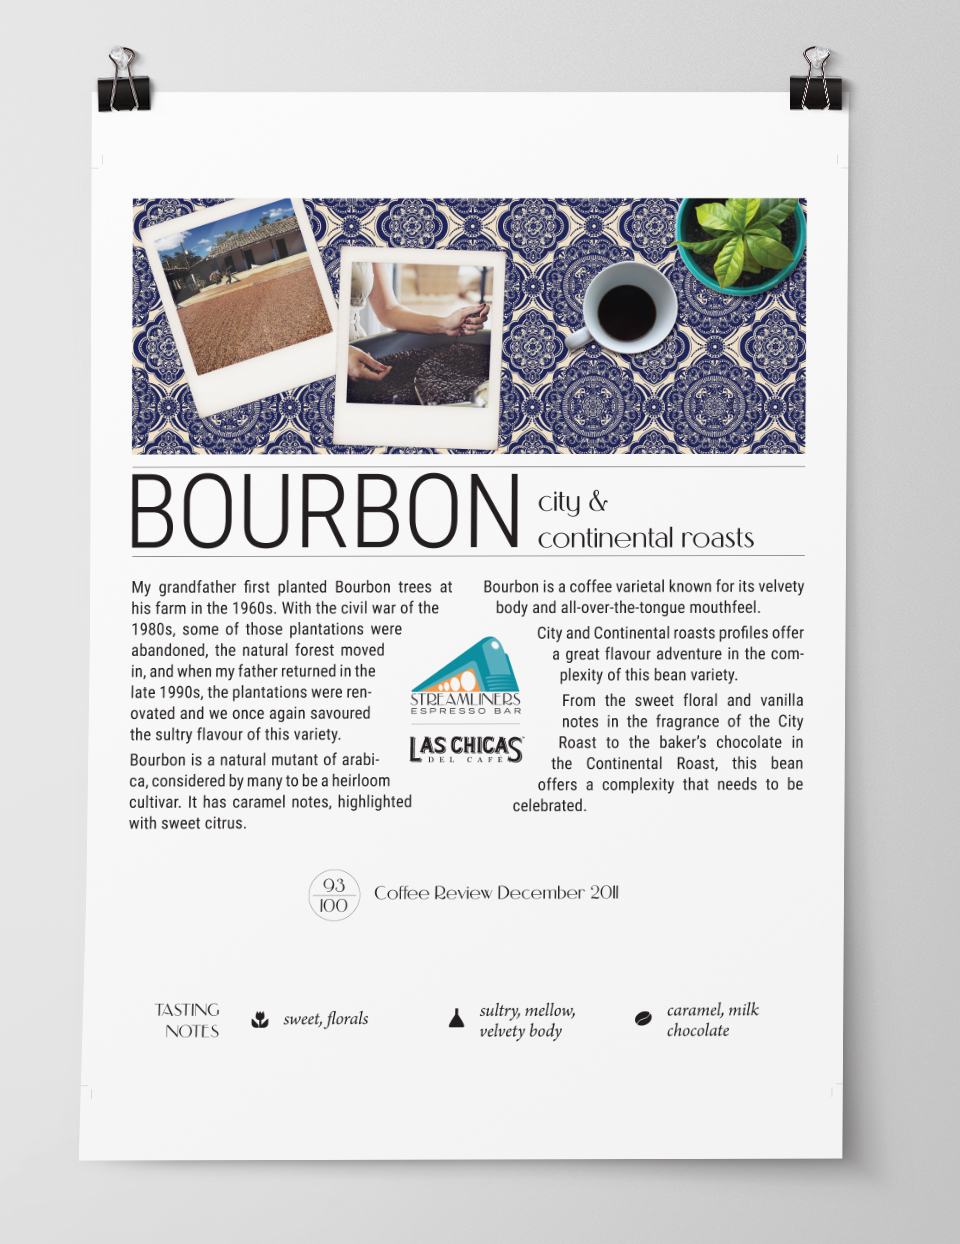 Coffee Bean Profile Poster Design 1